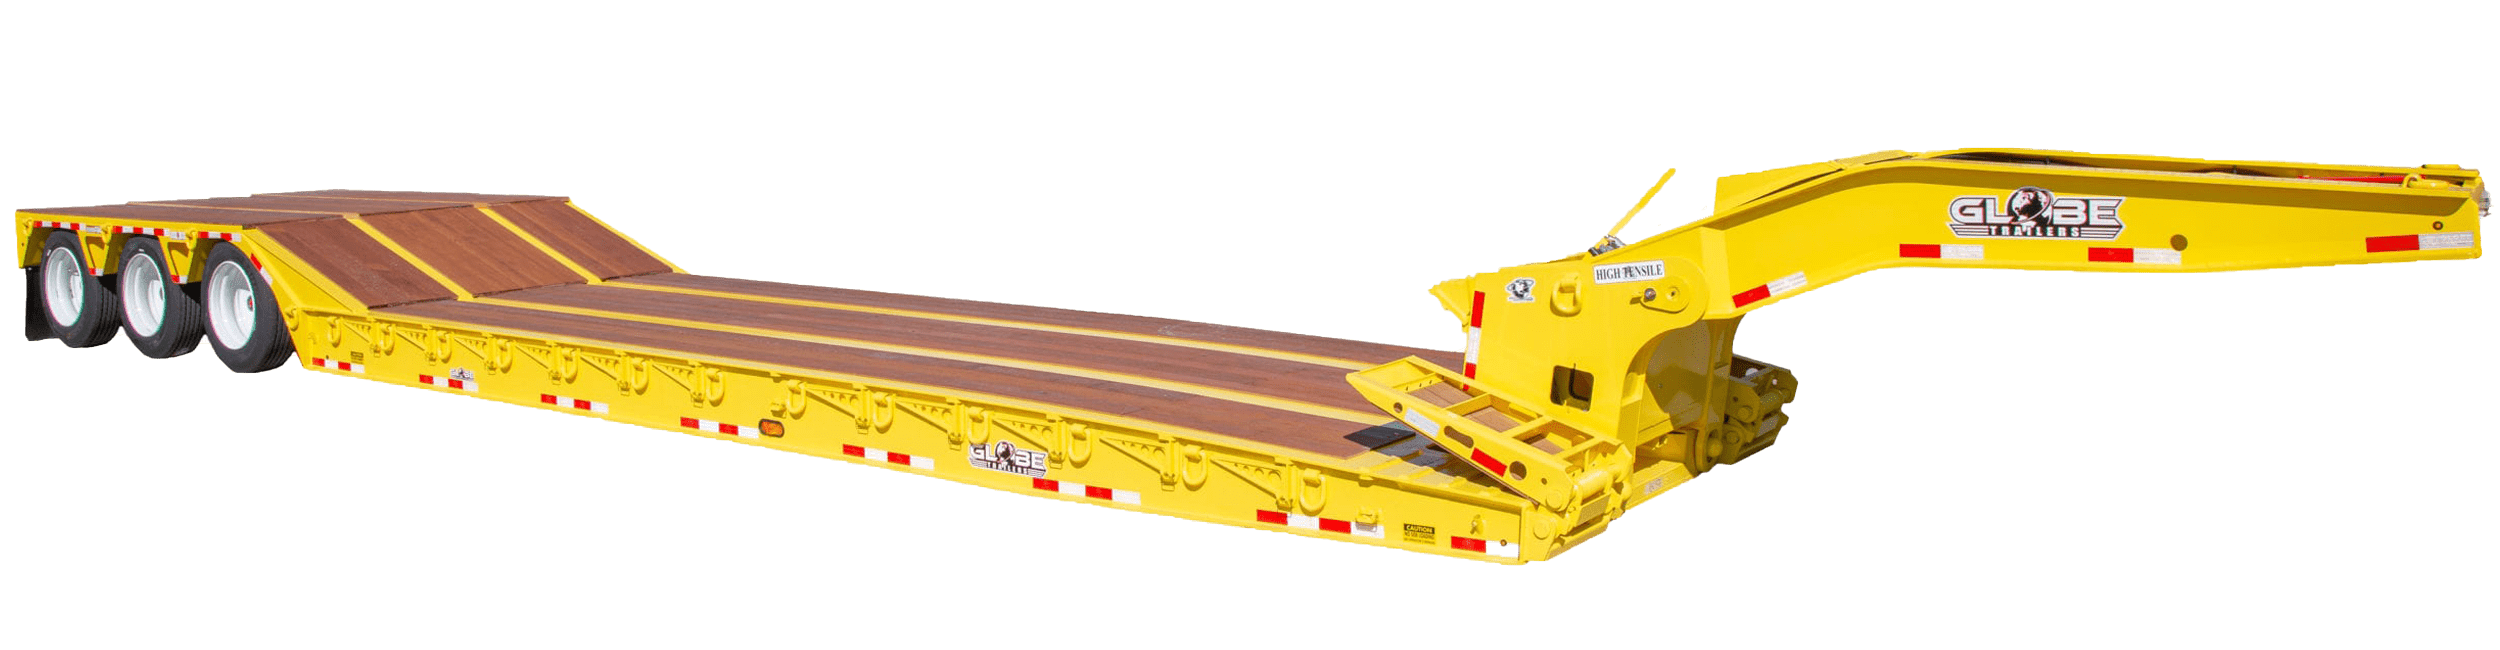 Yellow paver style lowboy with front ramps